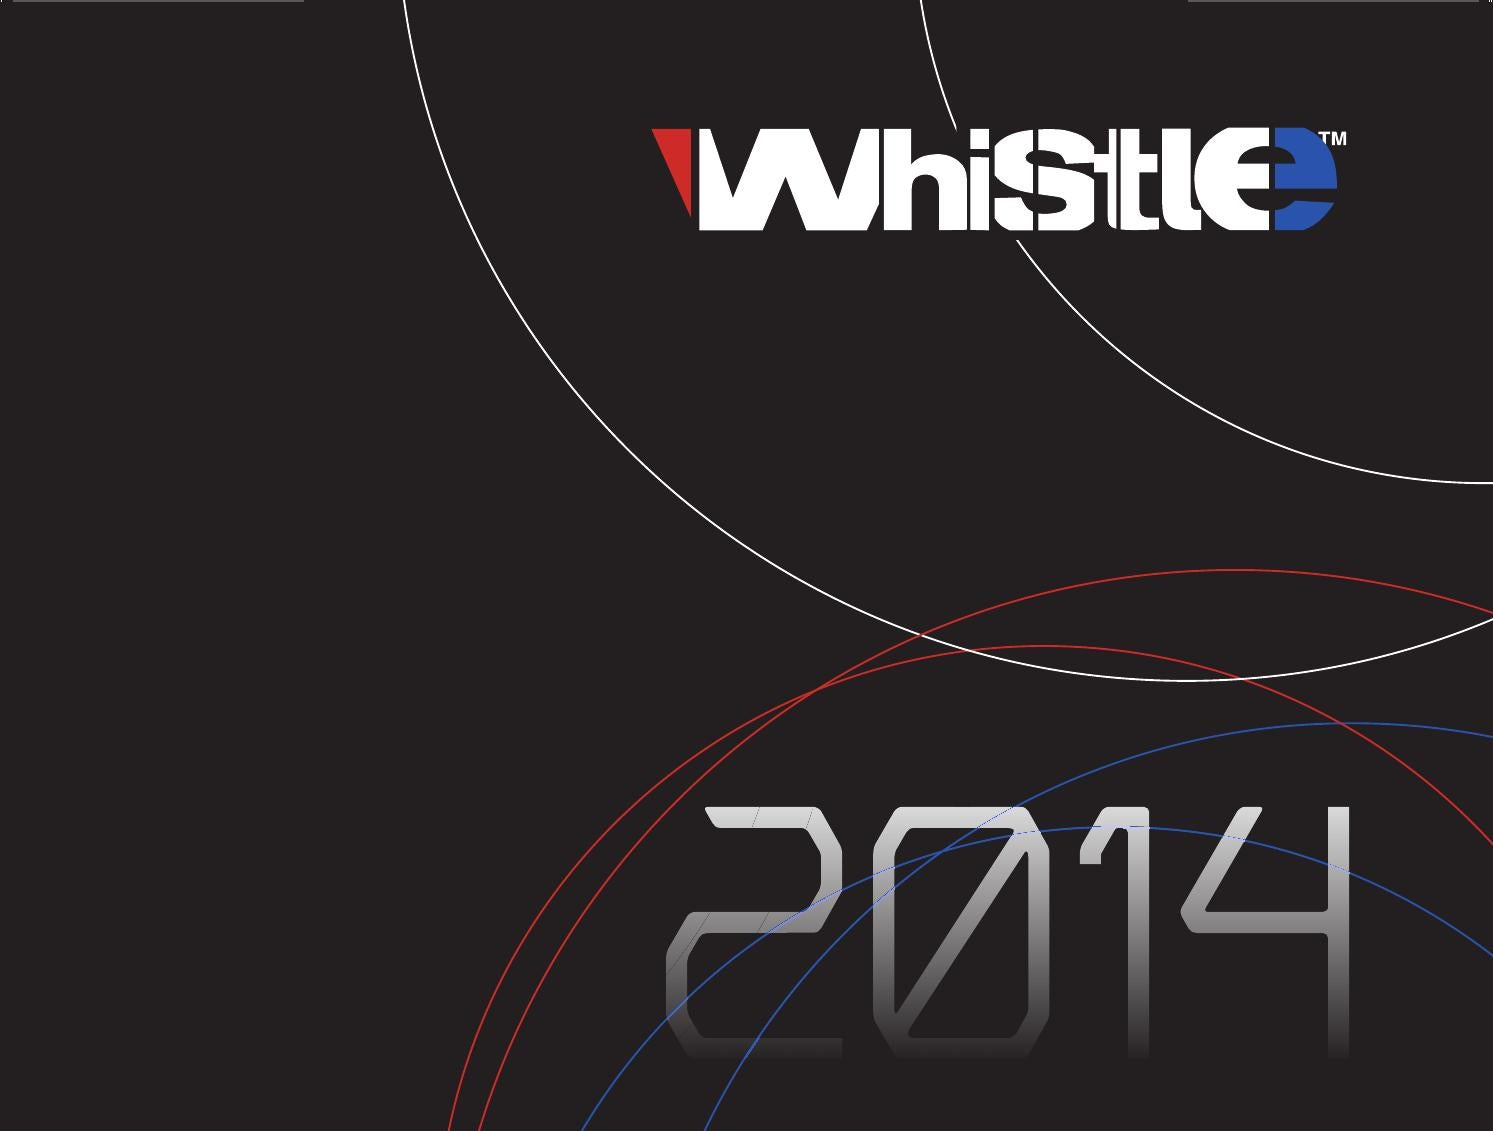 Catalogo whistle 2014 by MTBbici it - issuu